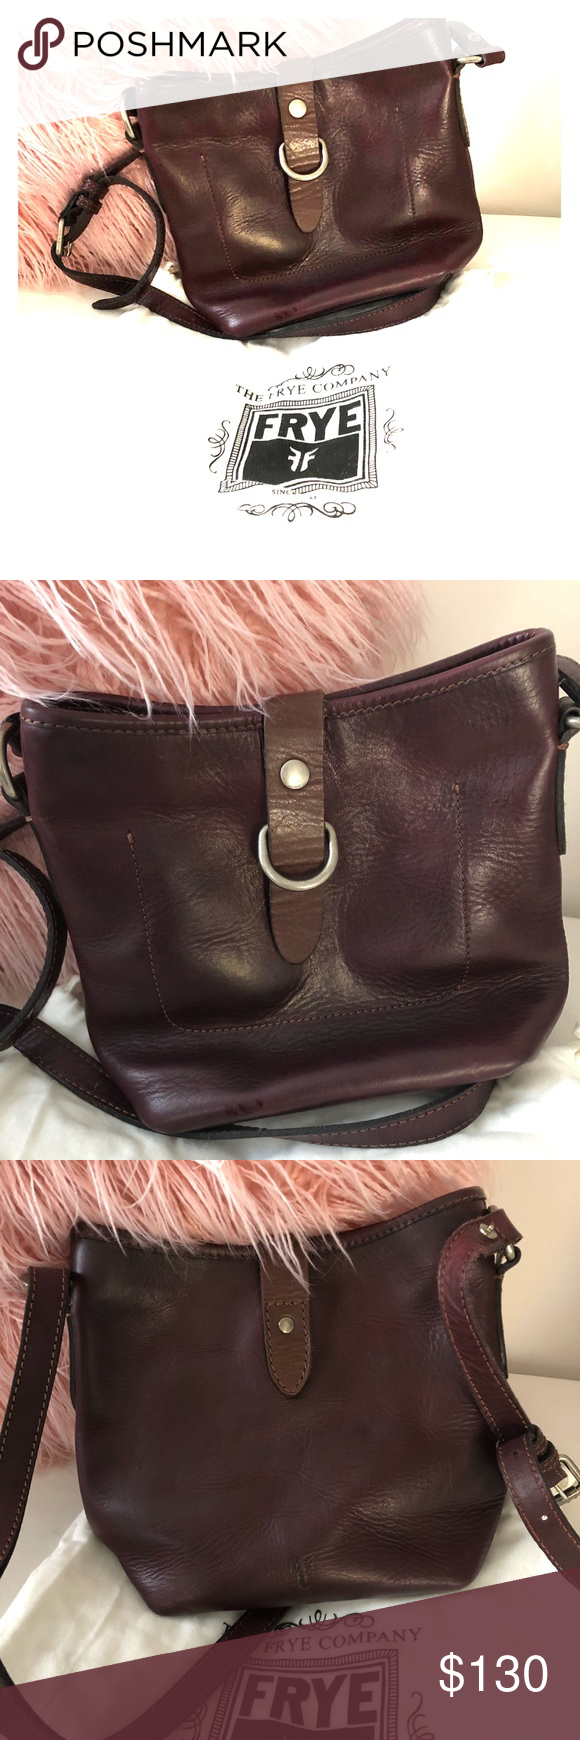 5e8007bf3 EUC Frye Handbag Amazing leather handbag. Soft leather, as Frye is know  for! Frye Bags Shoulder Bags